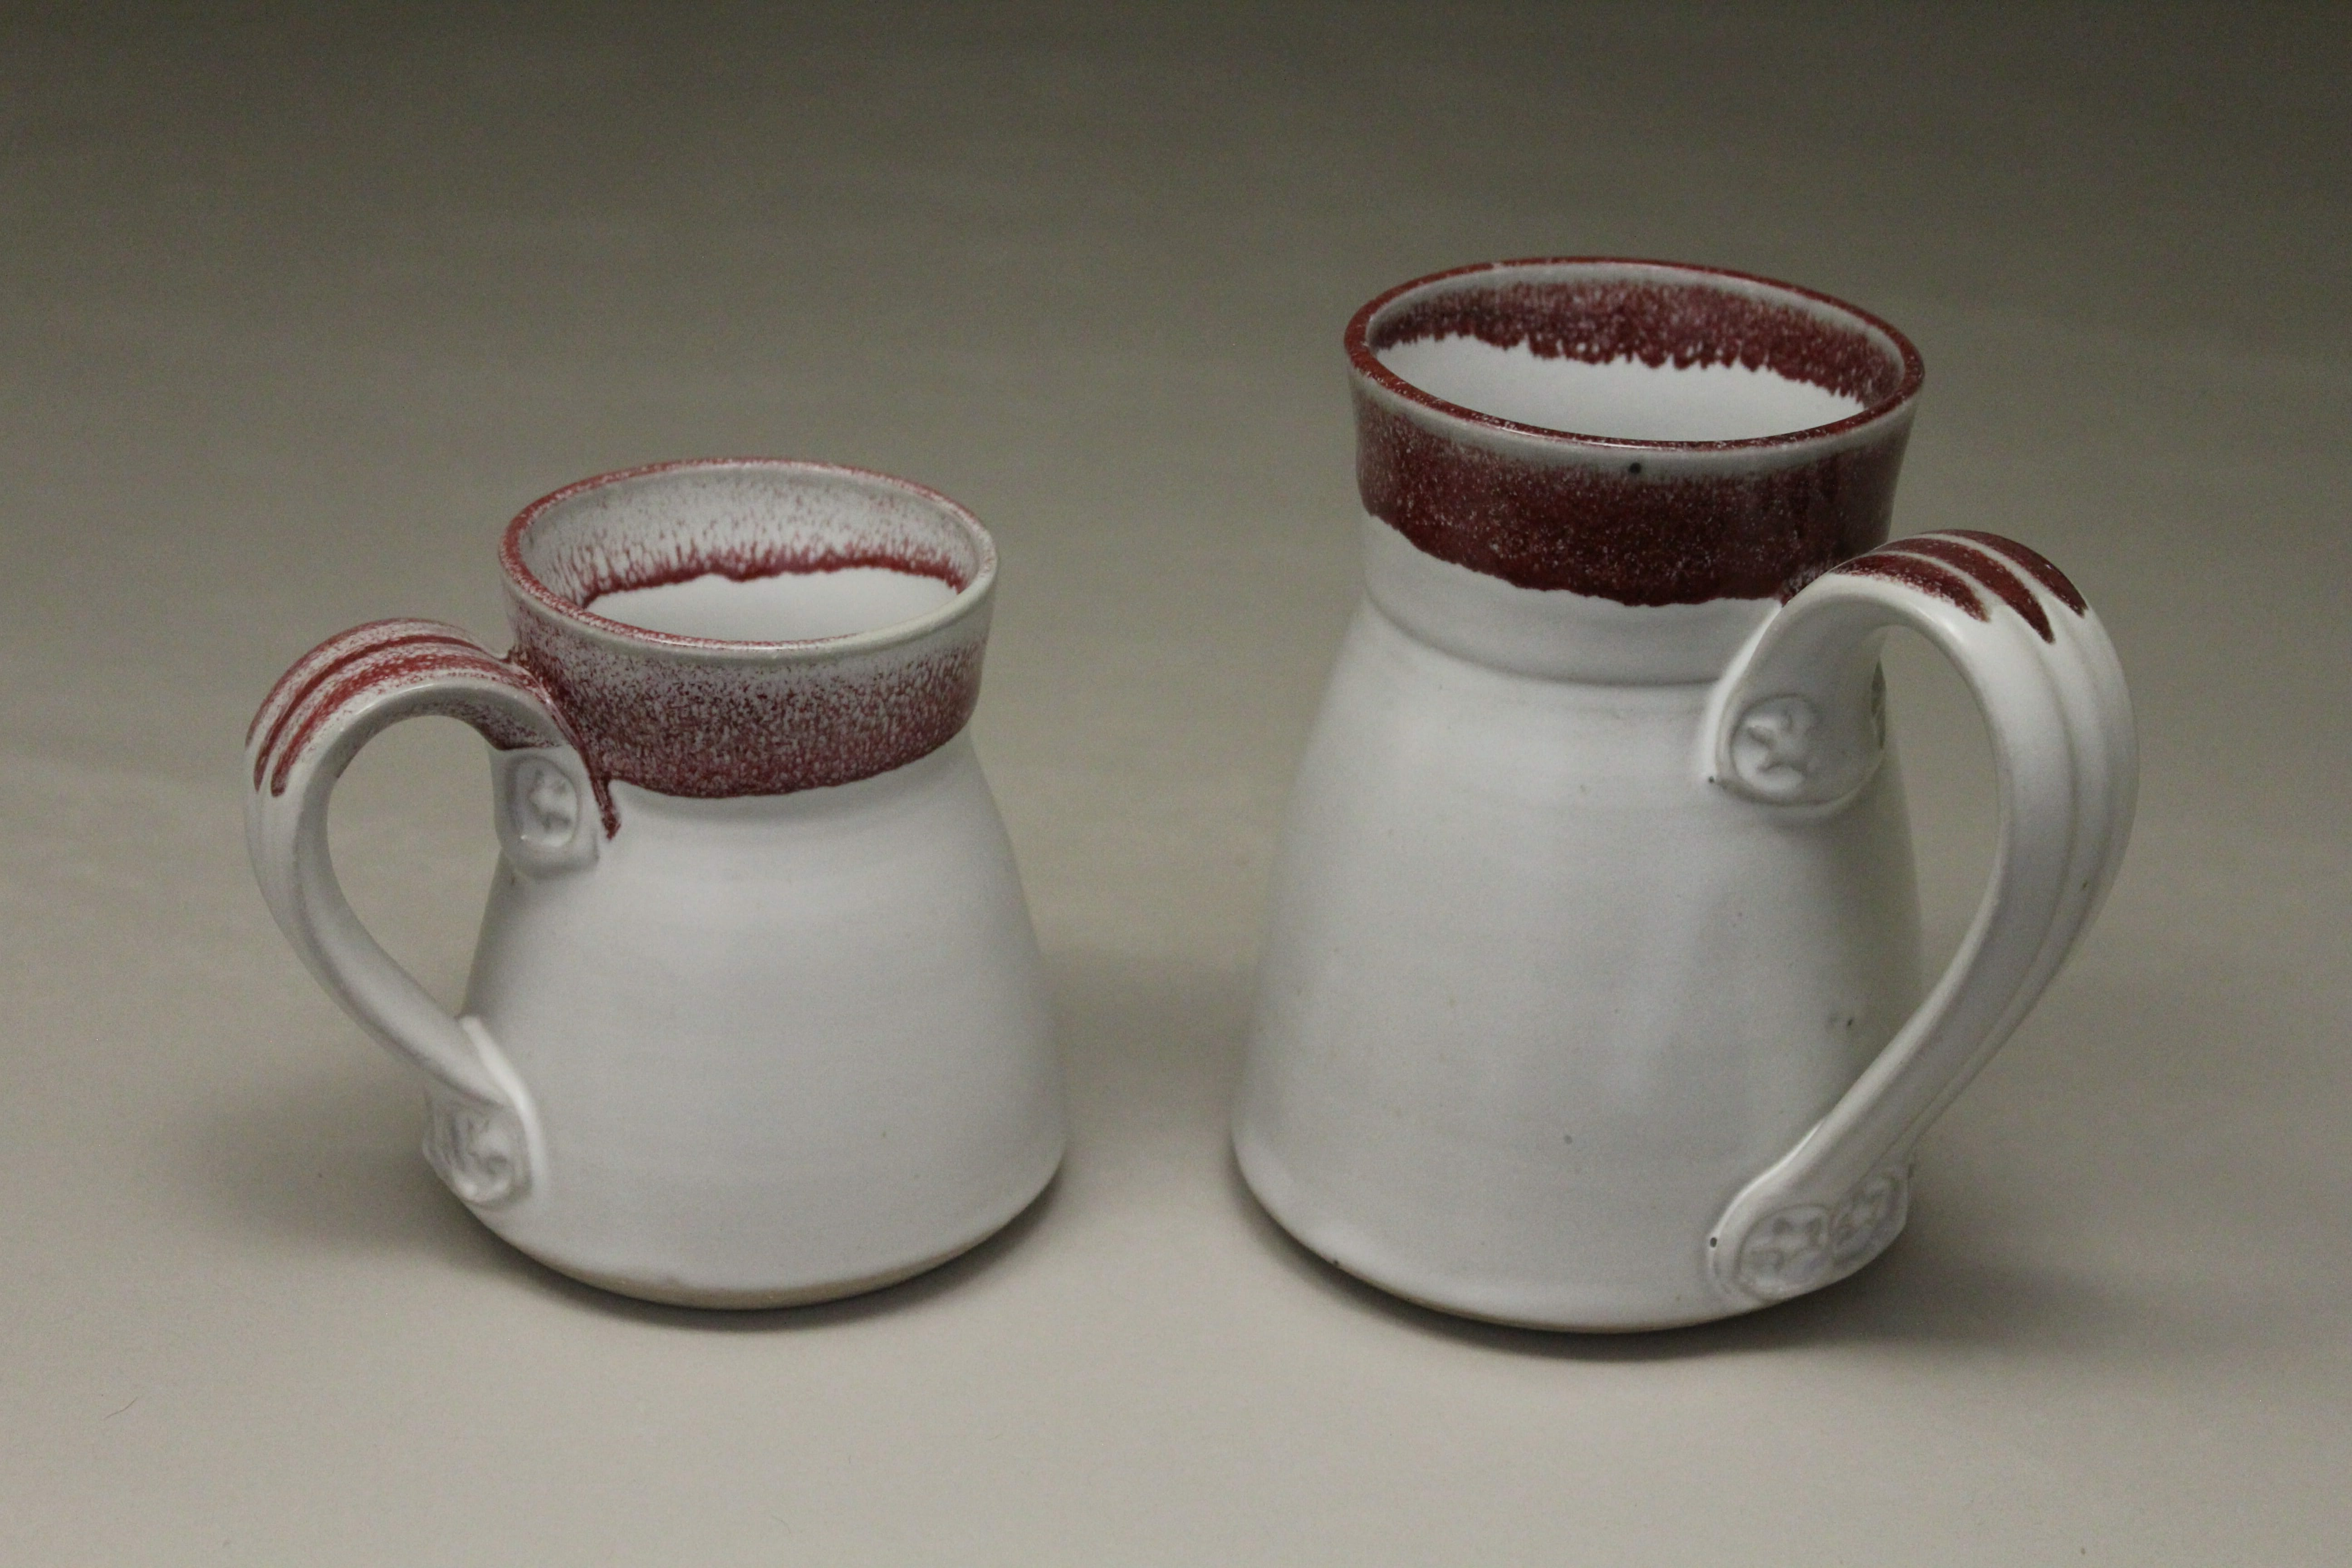 Mug, Small or Large Sizes, Smooth Design in White and Red Glaze